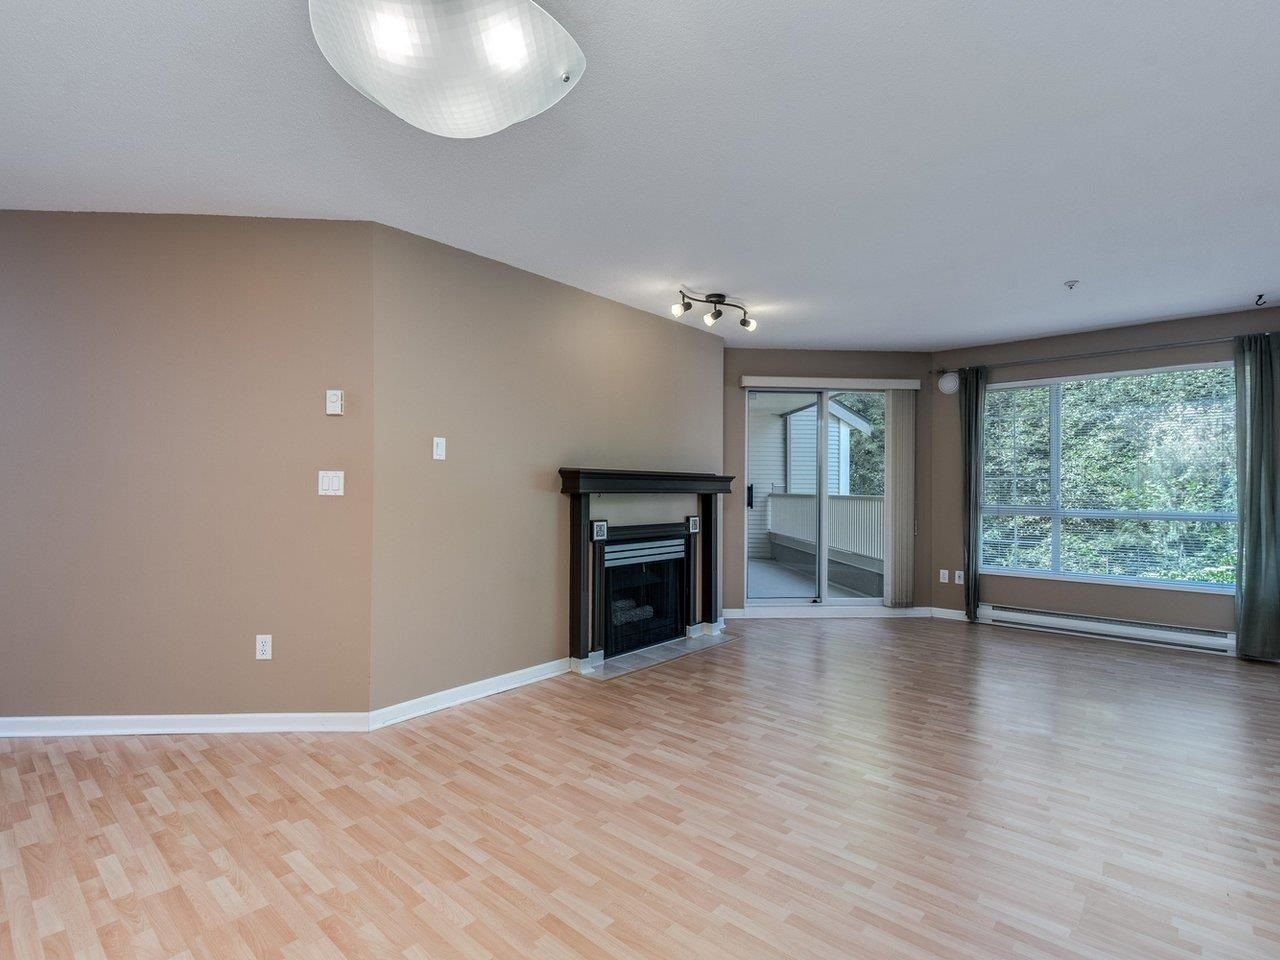 """Photo 6: Photos: 320 1252 TOWN CENTRE Boulevard in Coquitlam: Canyon Springs Condo for sale in """"The Kennedy"""" : MLS®# R2595291"""